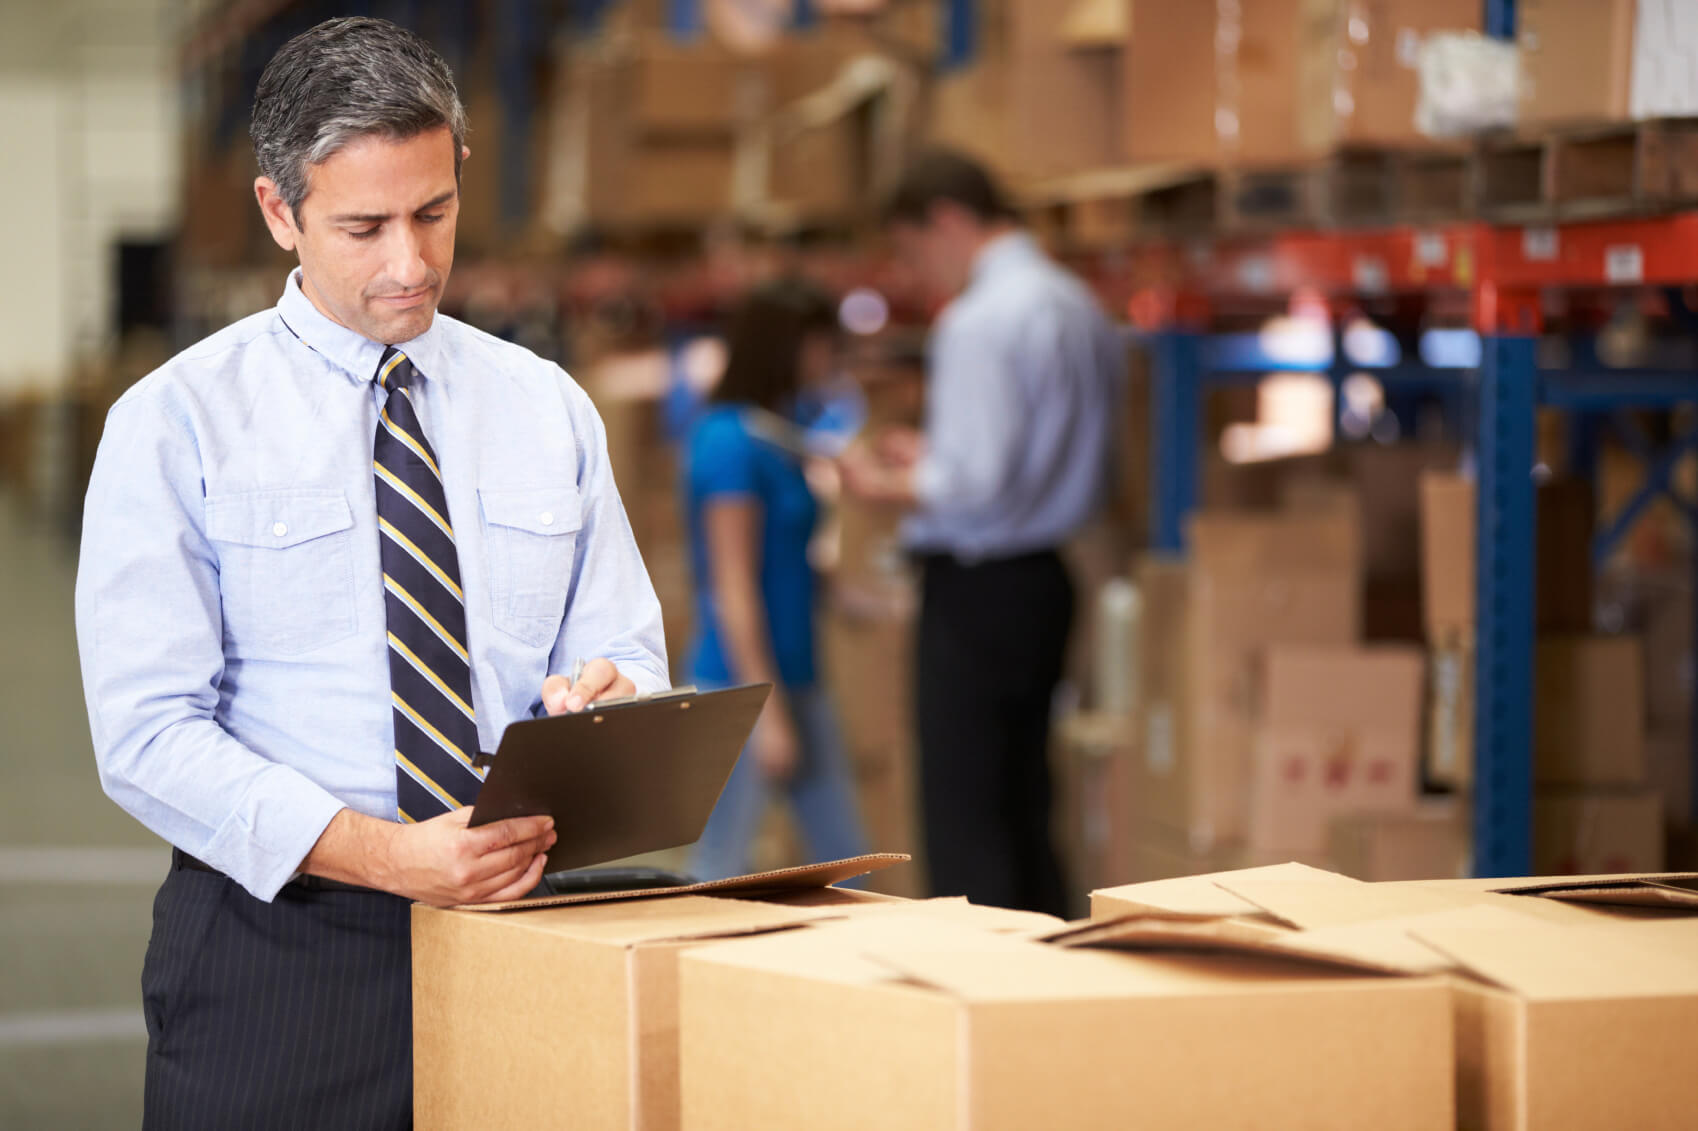 Business owner in warehouse with clipboard